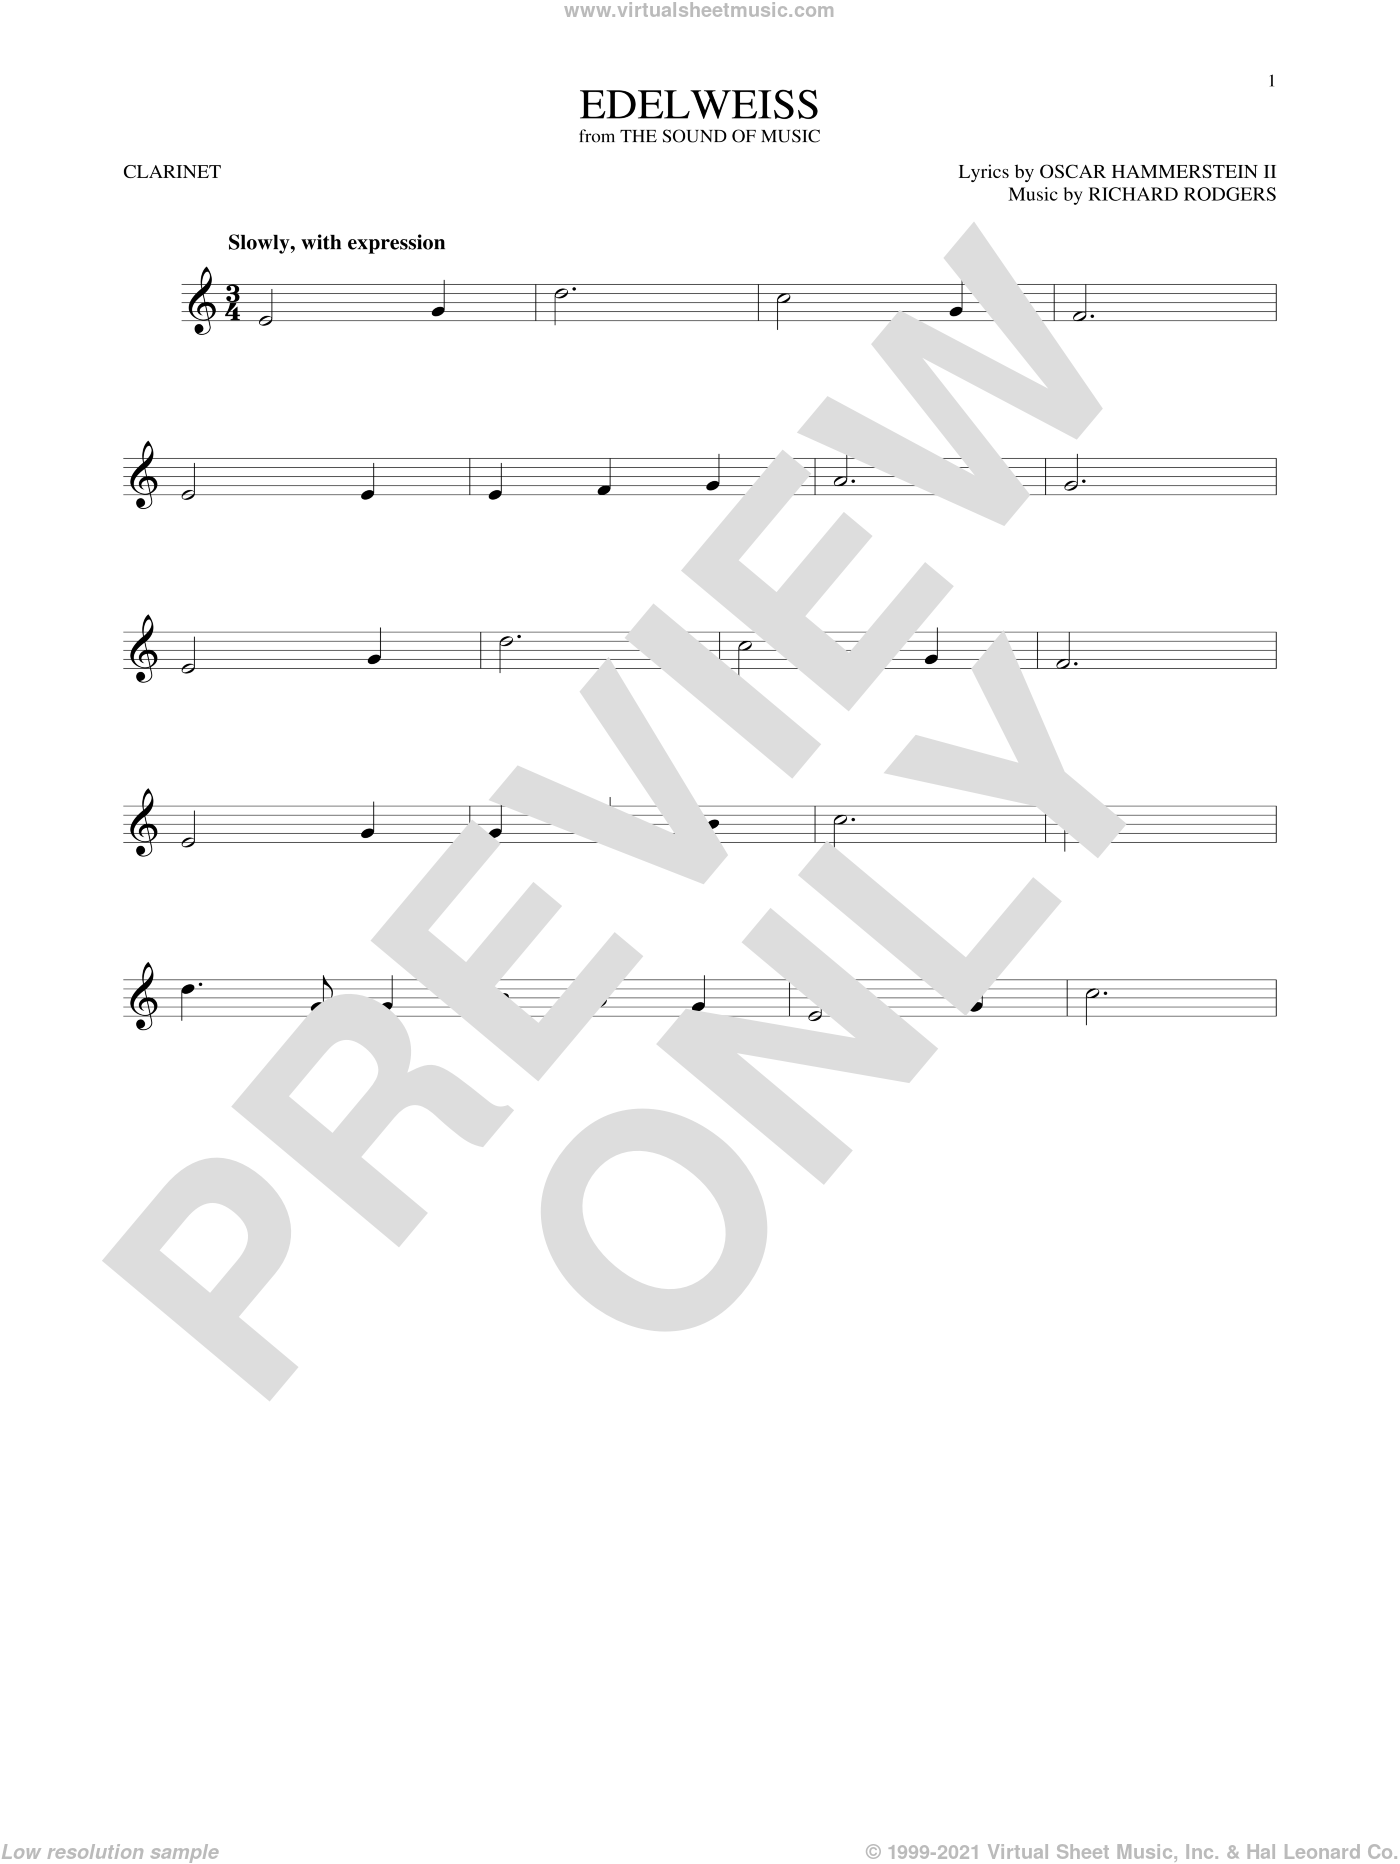 Edelweiss sheet music for clarinet solo by Rodgers & Hammerstein, Oscar II Hammerstein and Richard Rodgers, intermediate skill level